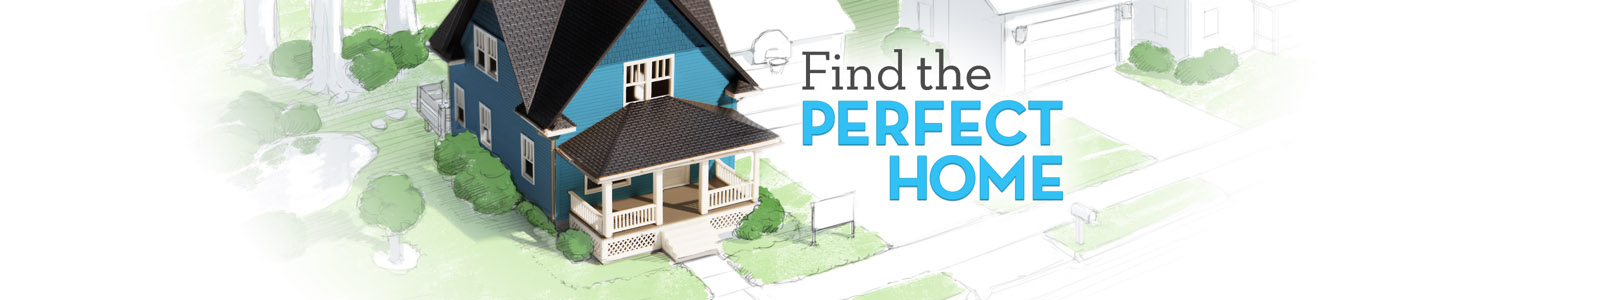 Graham beer visual designer illustrator for Find the perfect home